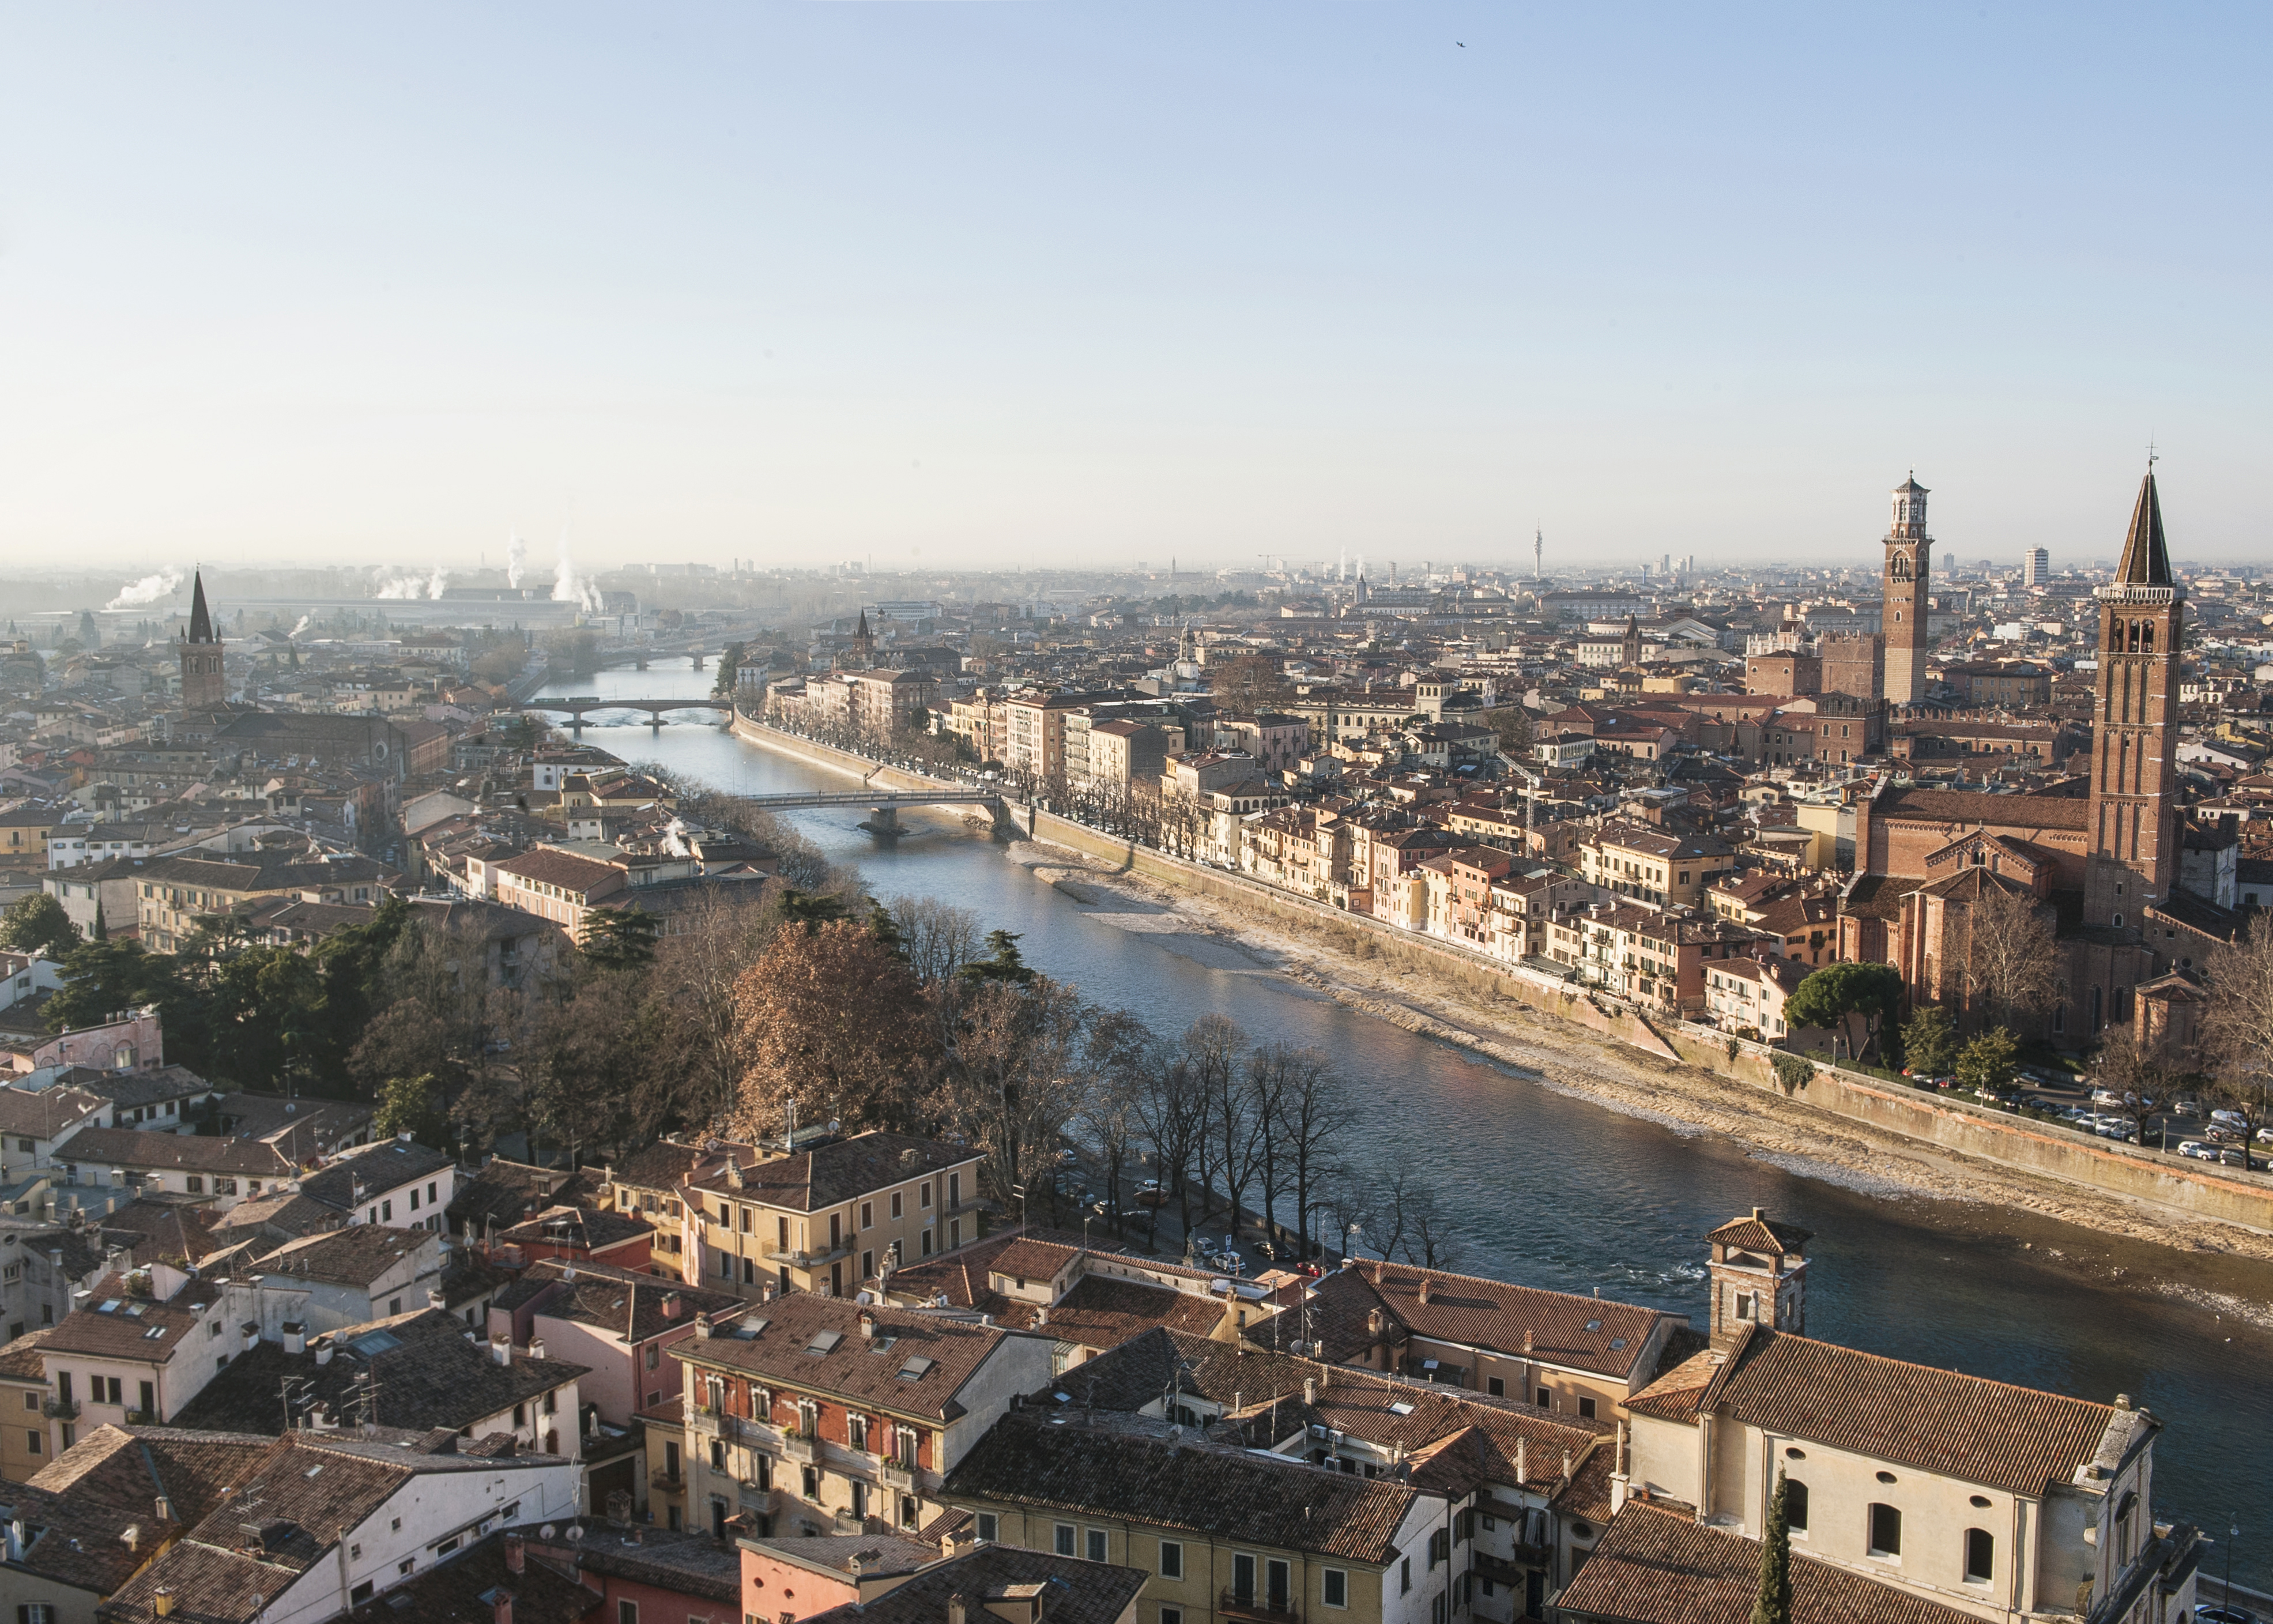 The city of Verona, Italy, as seen from the Castel San Pietro on Jan. 25, 2019. MUST CREDIT: Photo for The Washington Post by Emanuele Amighetti